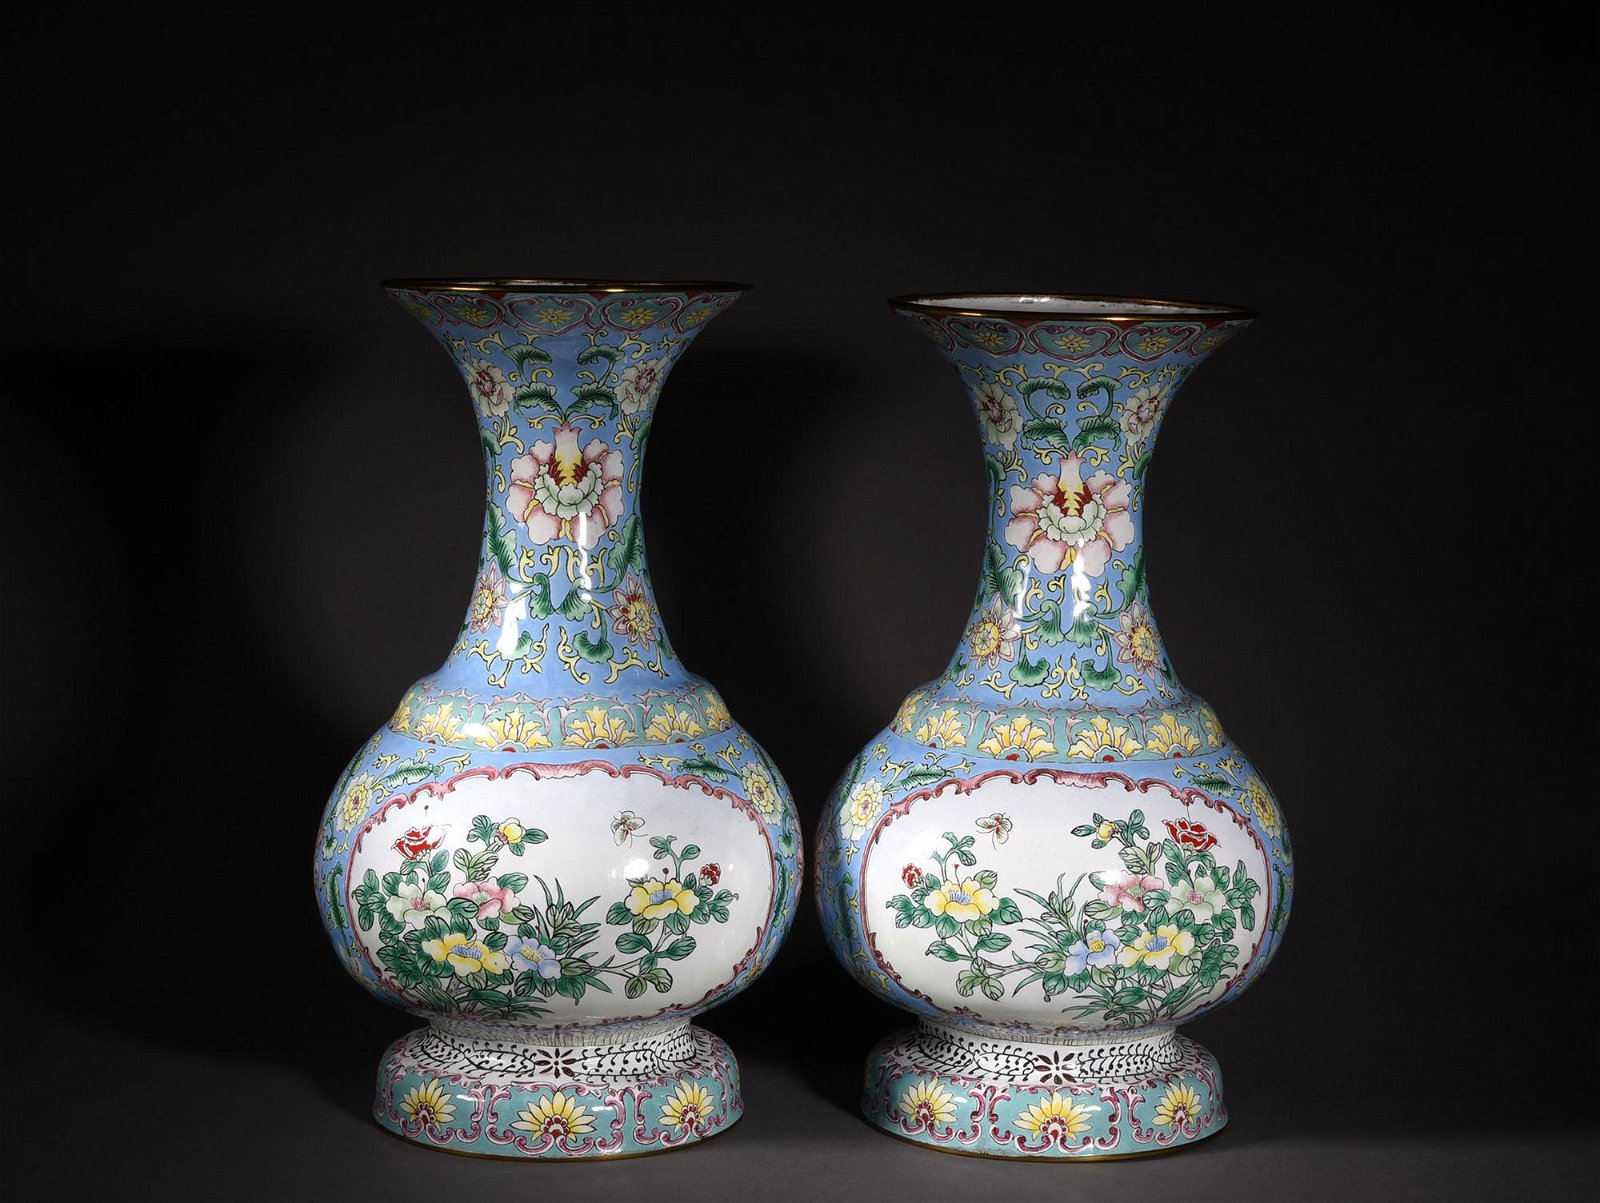 A PAIR OF PAINTED ENAMEL VASES, 19TH CENTURY